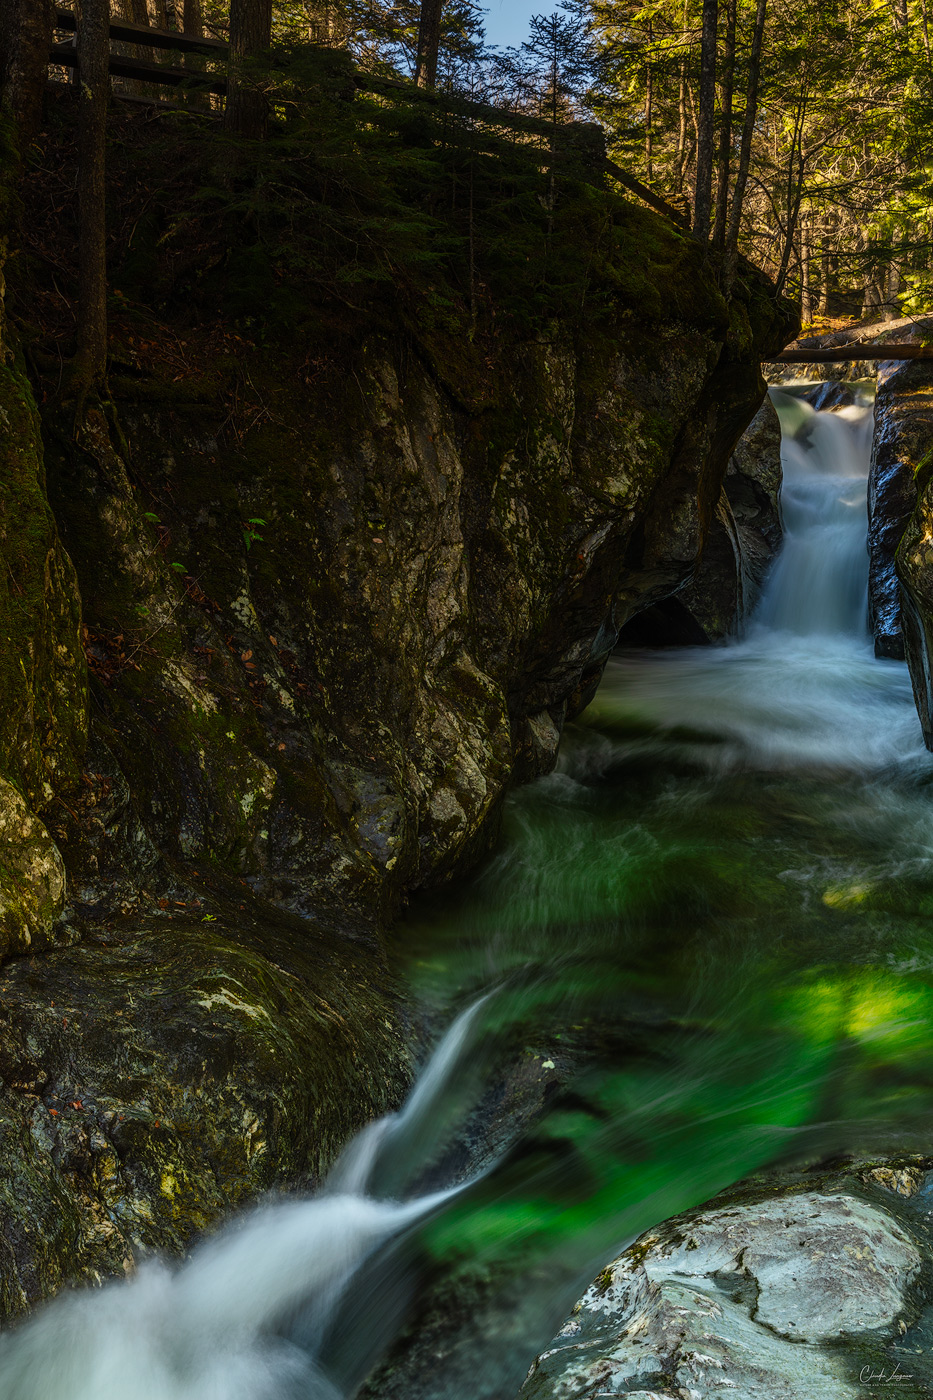 View of Texas Falls in Hancock in Vermont.